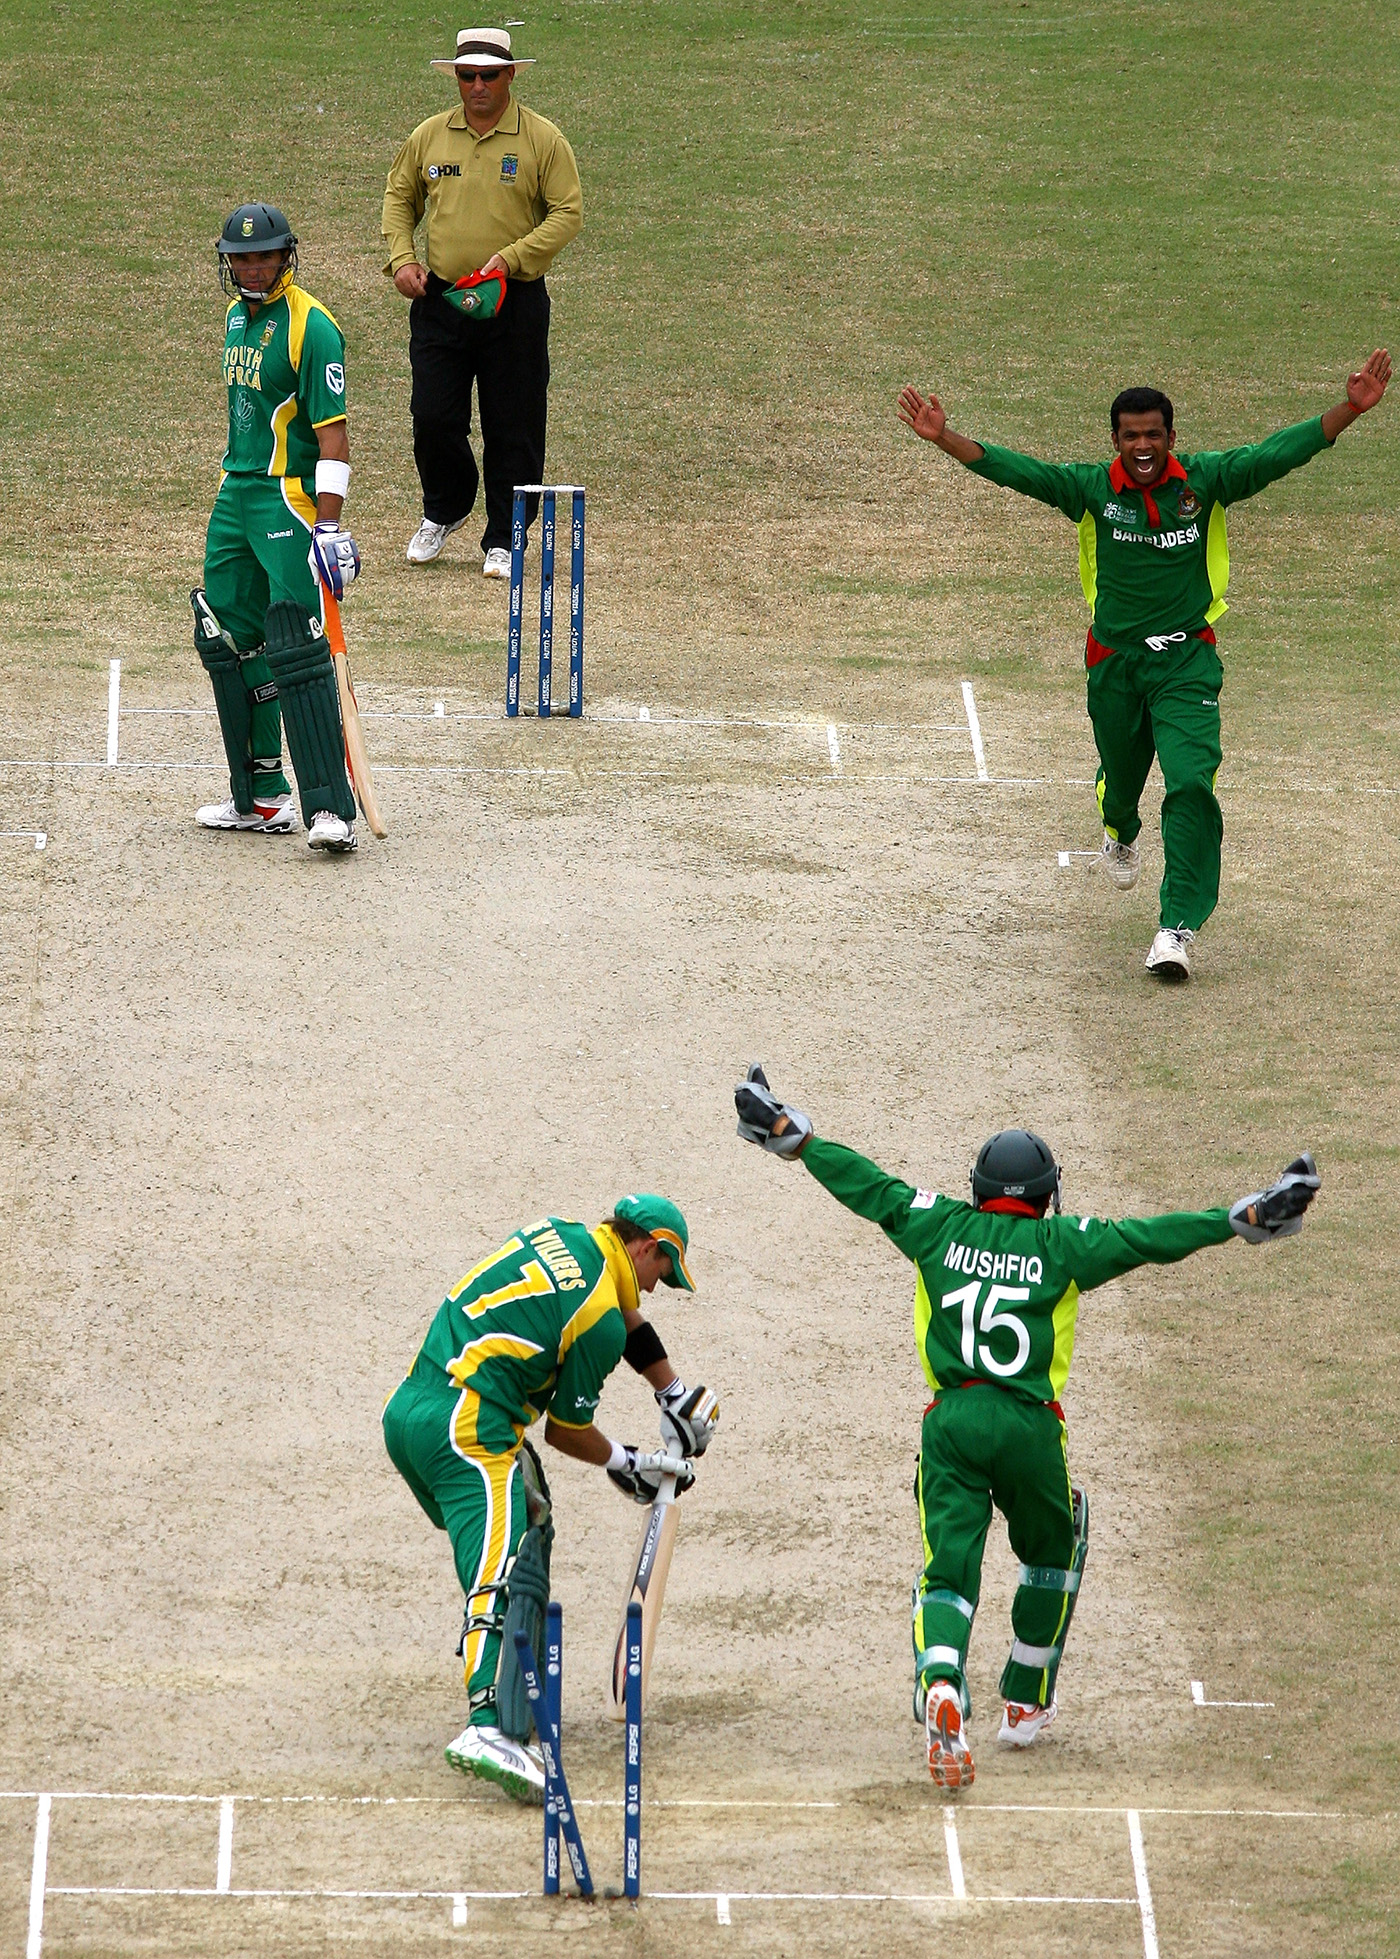 Like Rafique, Abdur Razzak also started out as a fast bowler, but a back injury forced him to turn to spin. He went on to become the first Bangladesh bowler to take 200 wickets in ODIs